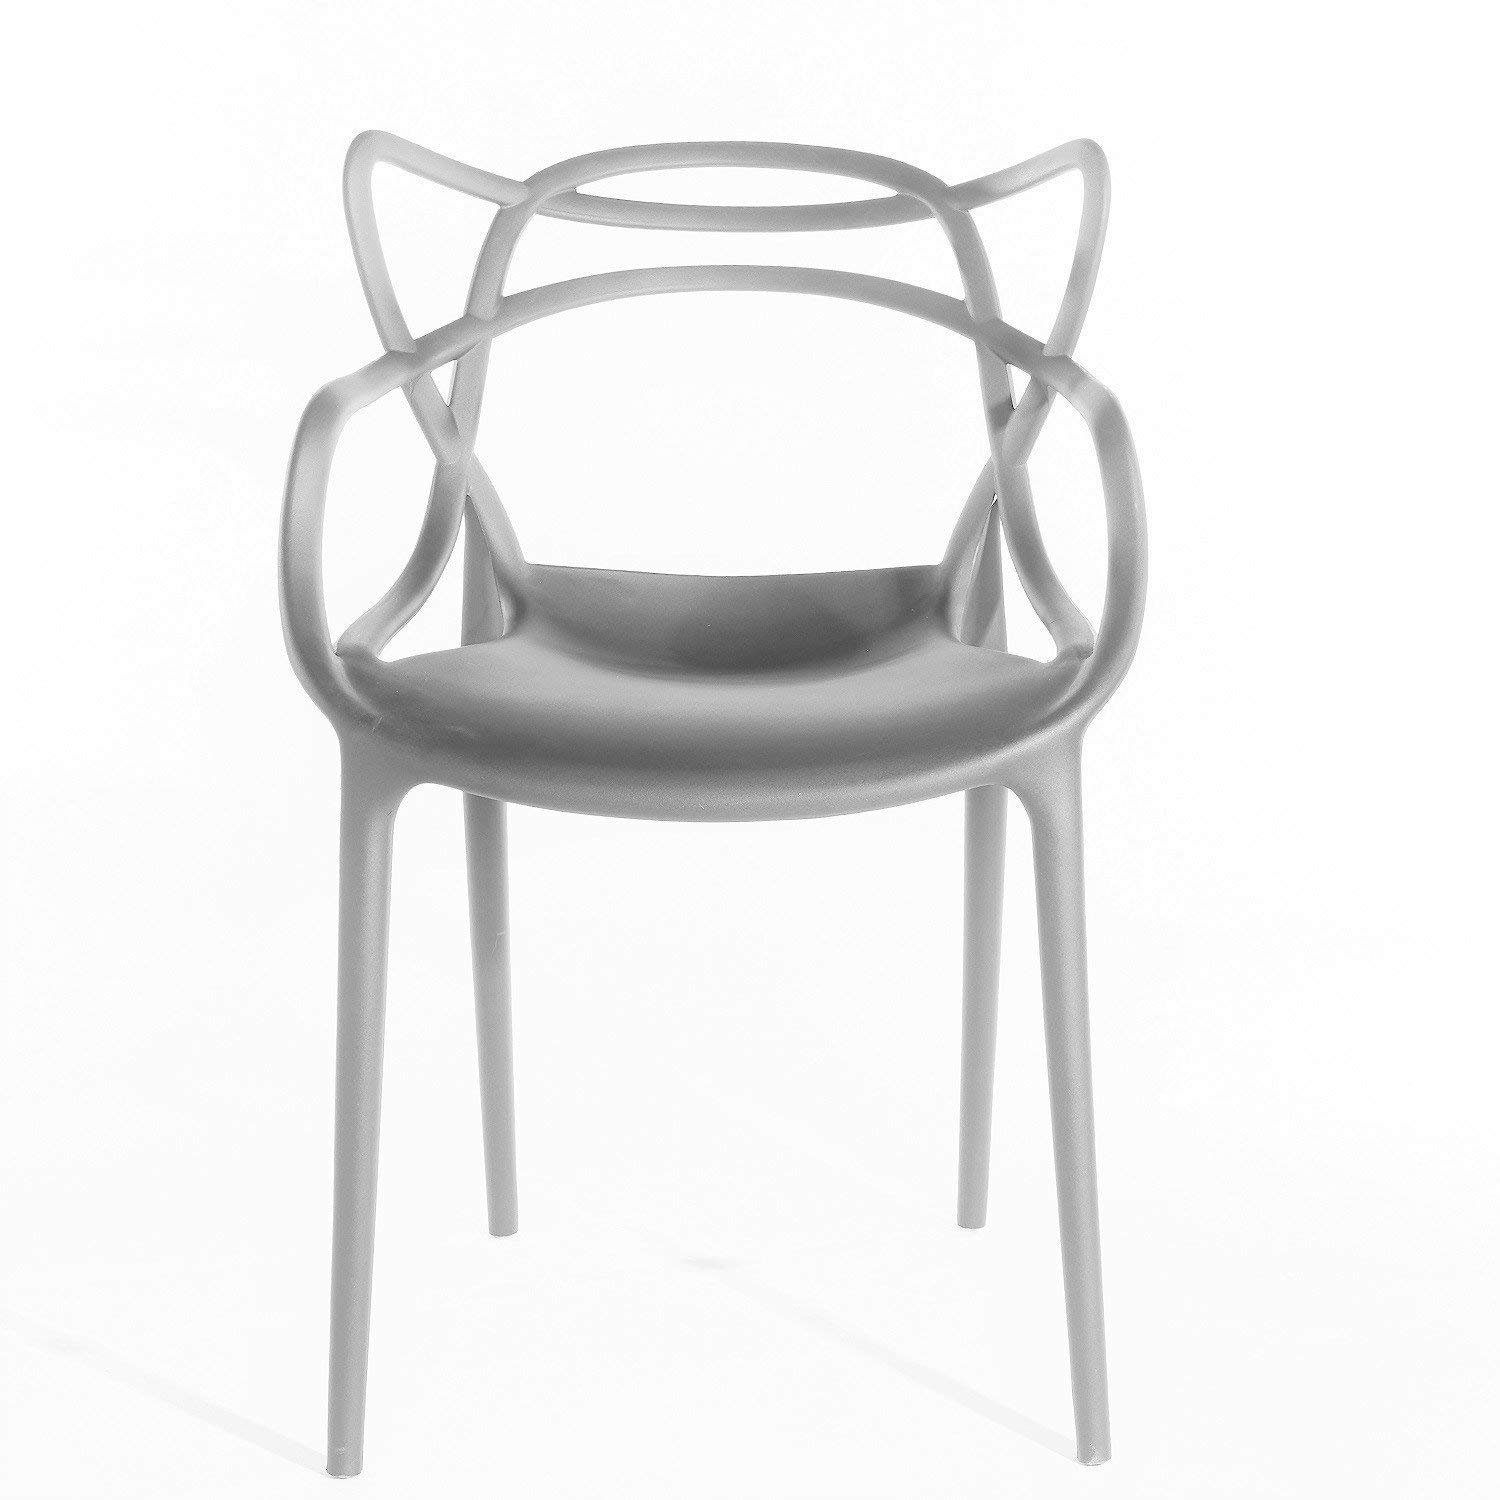 Niches Designer Inspired Master Chair UK - Indoor/Outdoor Stack-able  Kitchen Grey Ultra Modern Dining Cafe, Restaurant, Bar, Canteen Chair  Stylish